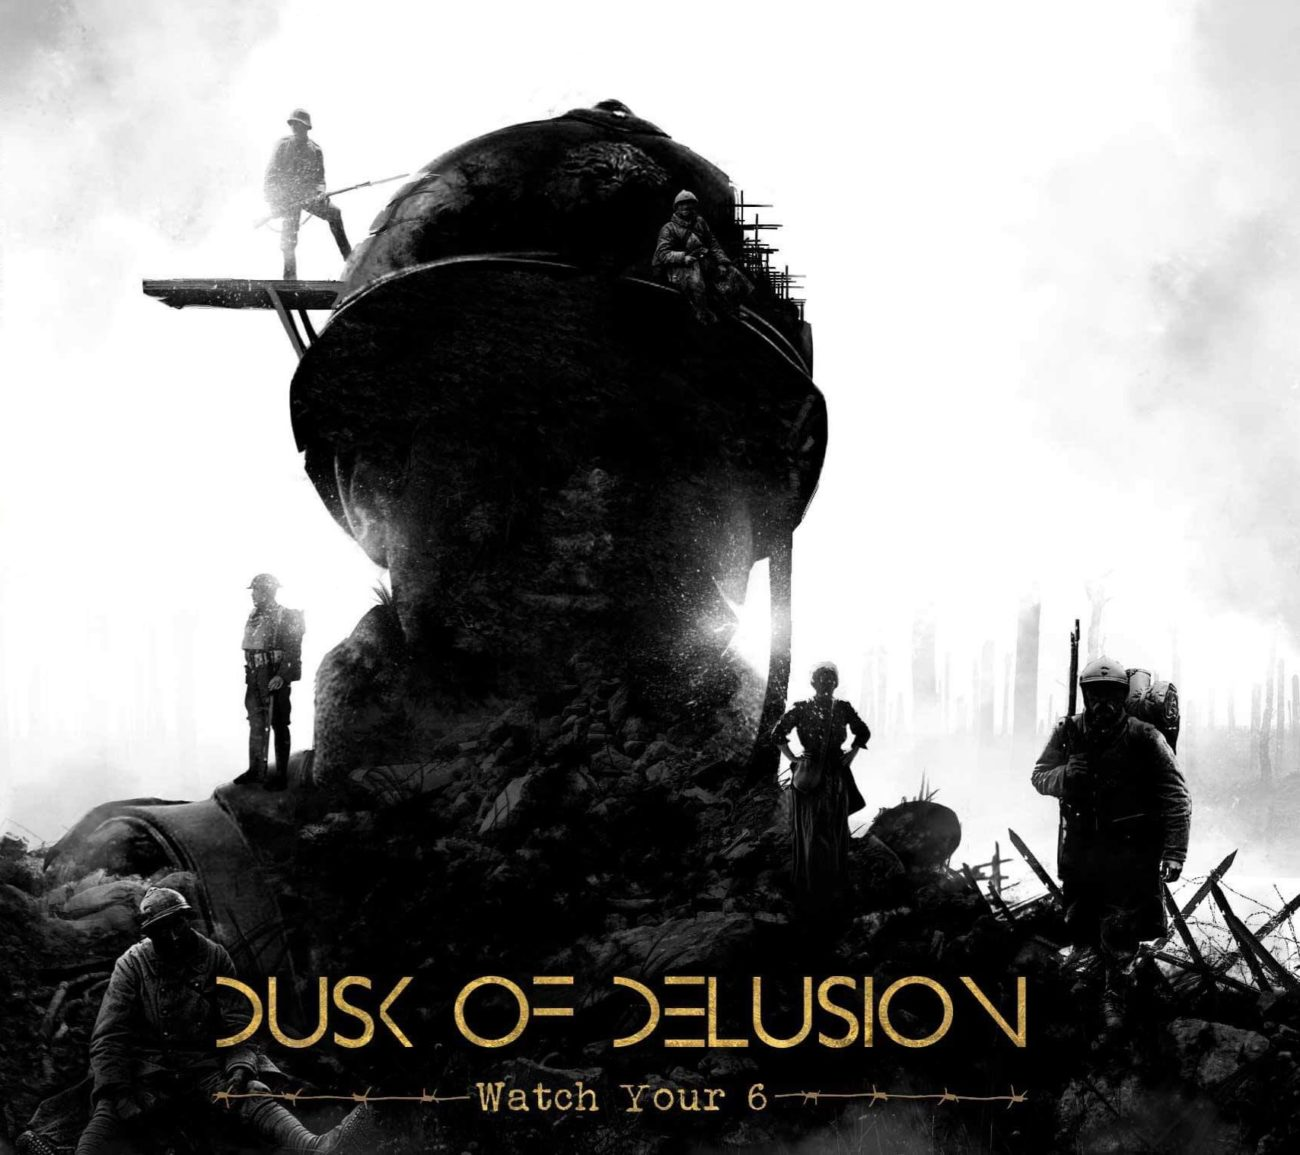 DUSK OF DELUSION - Watch Your 6